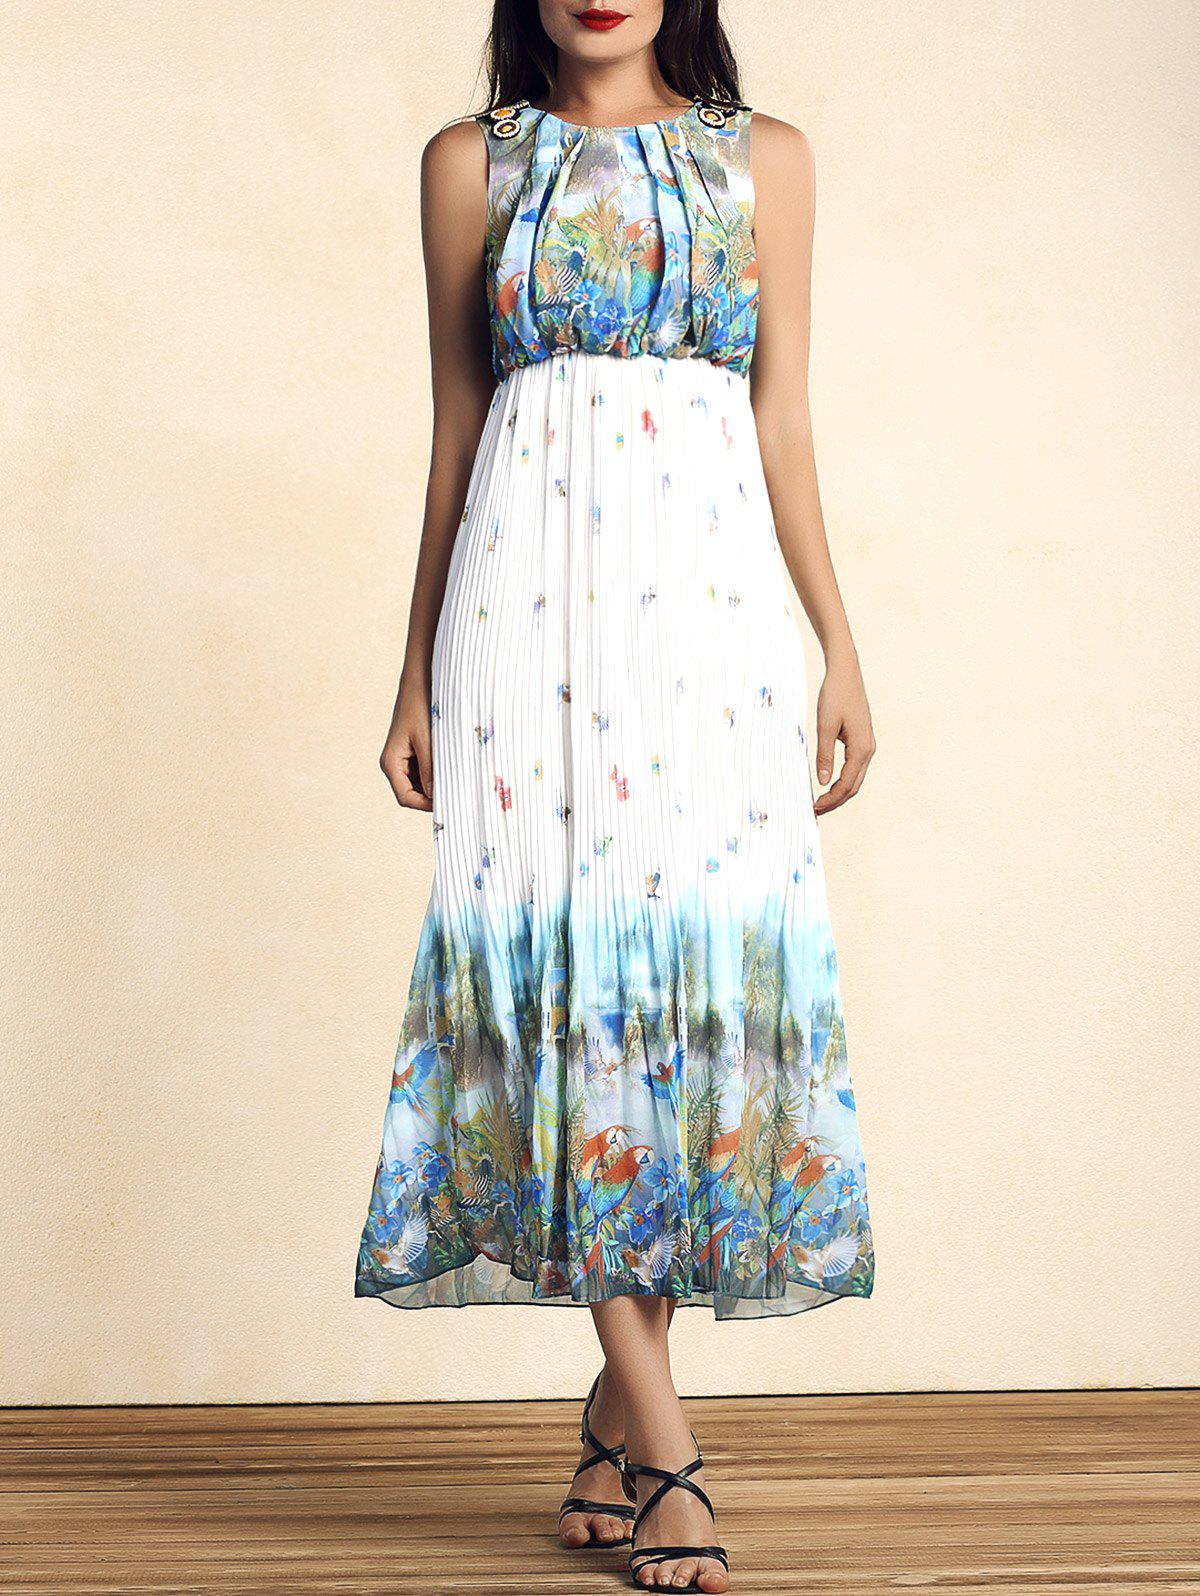 Bohemian Sleeveless Scoop Neck Bird Print Pleated Women's Dress - COLORMIX M